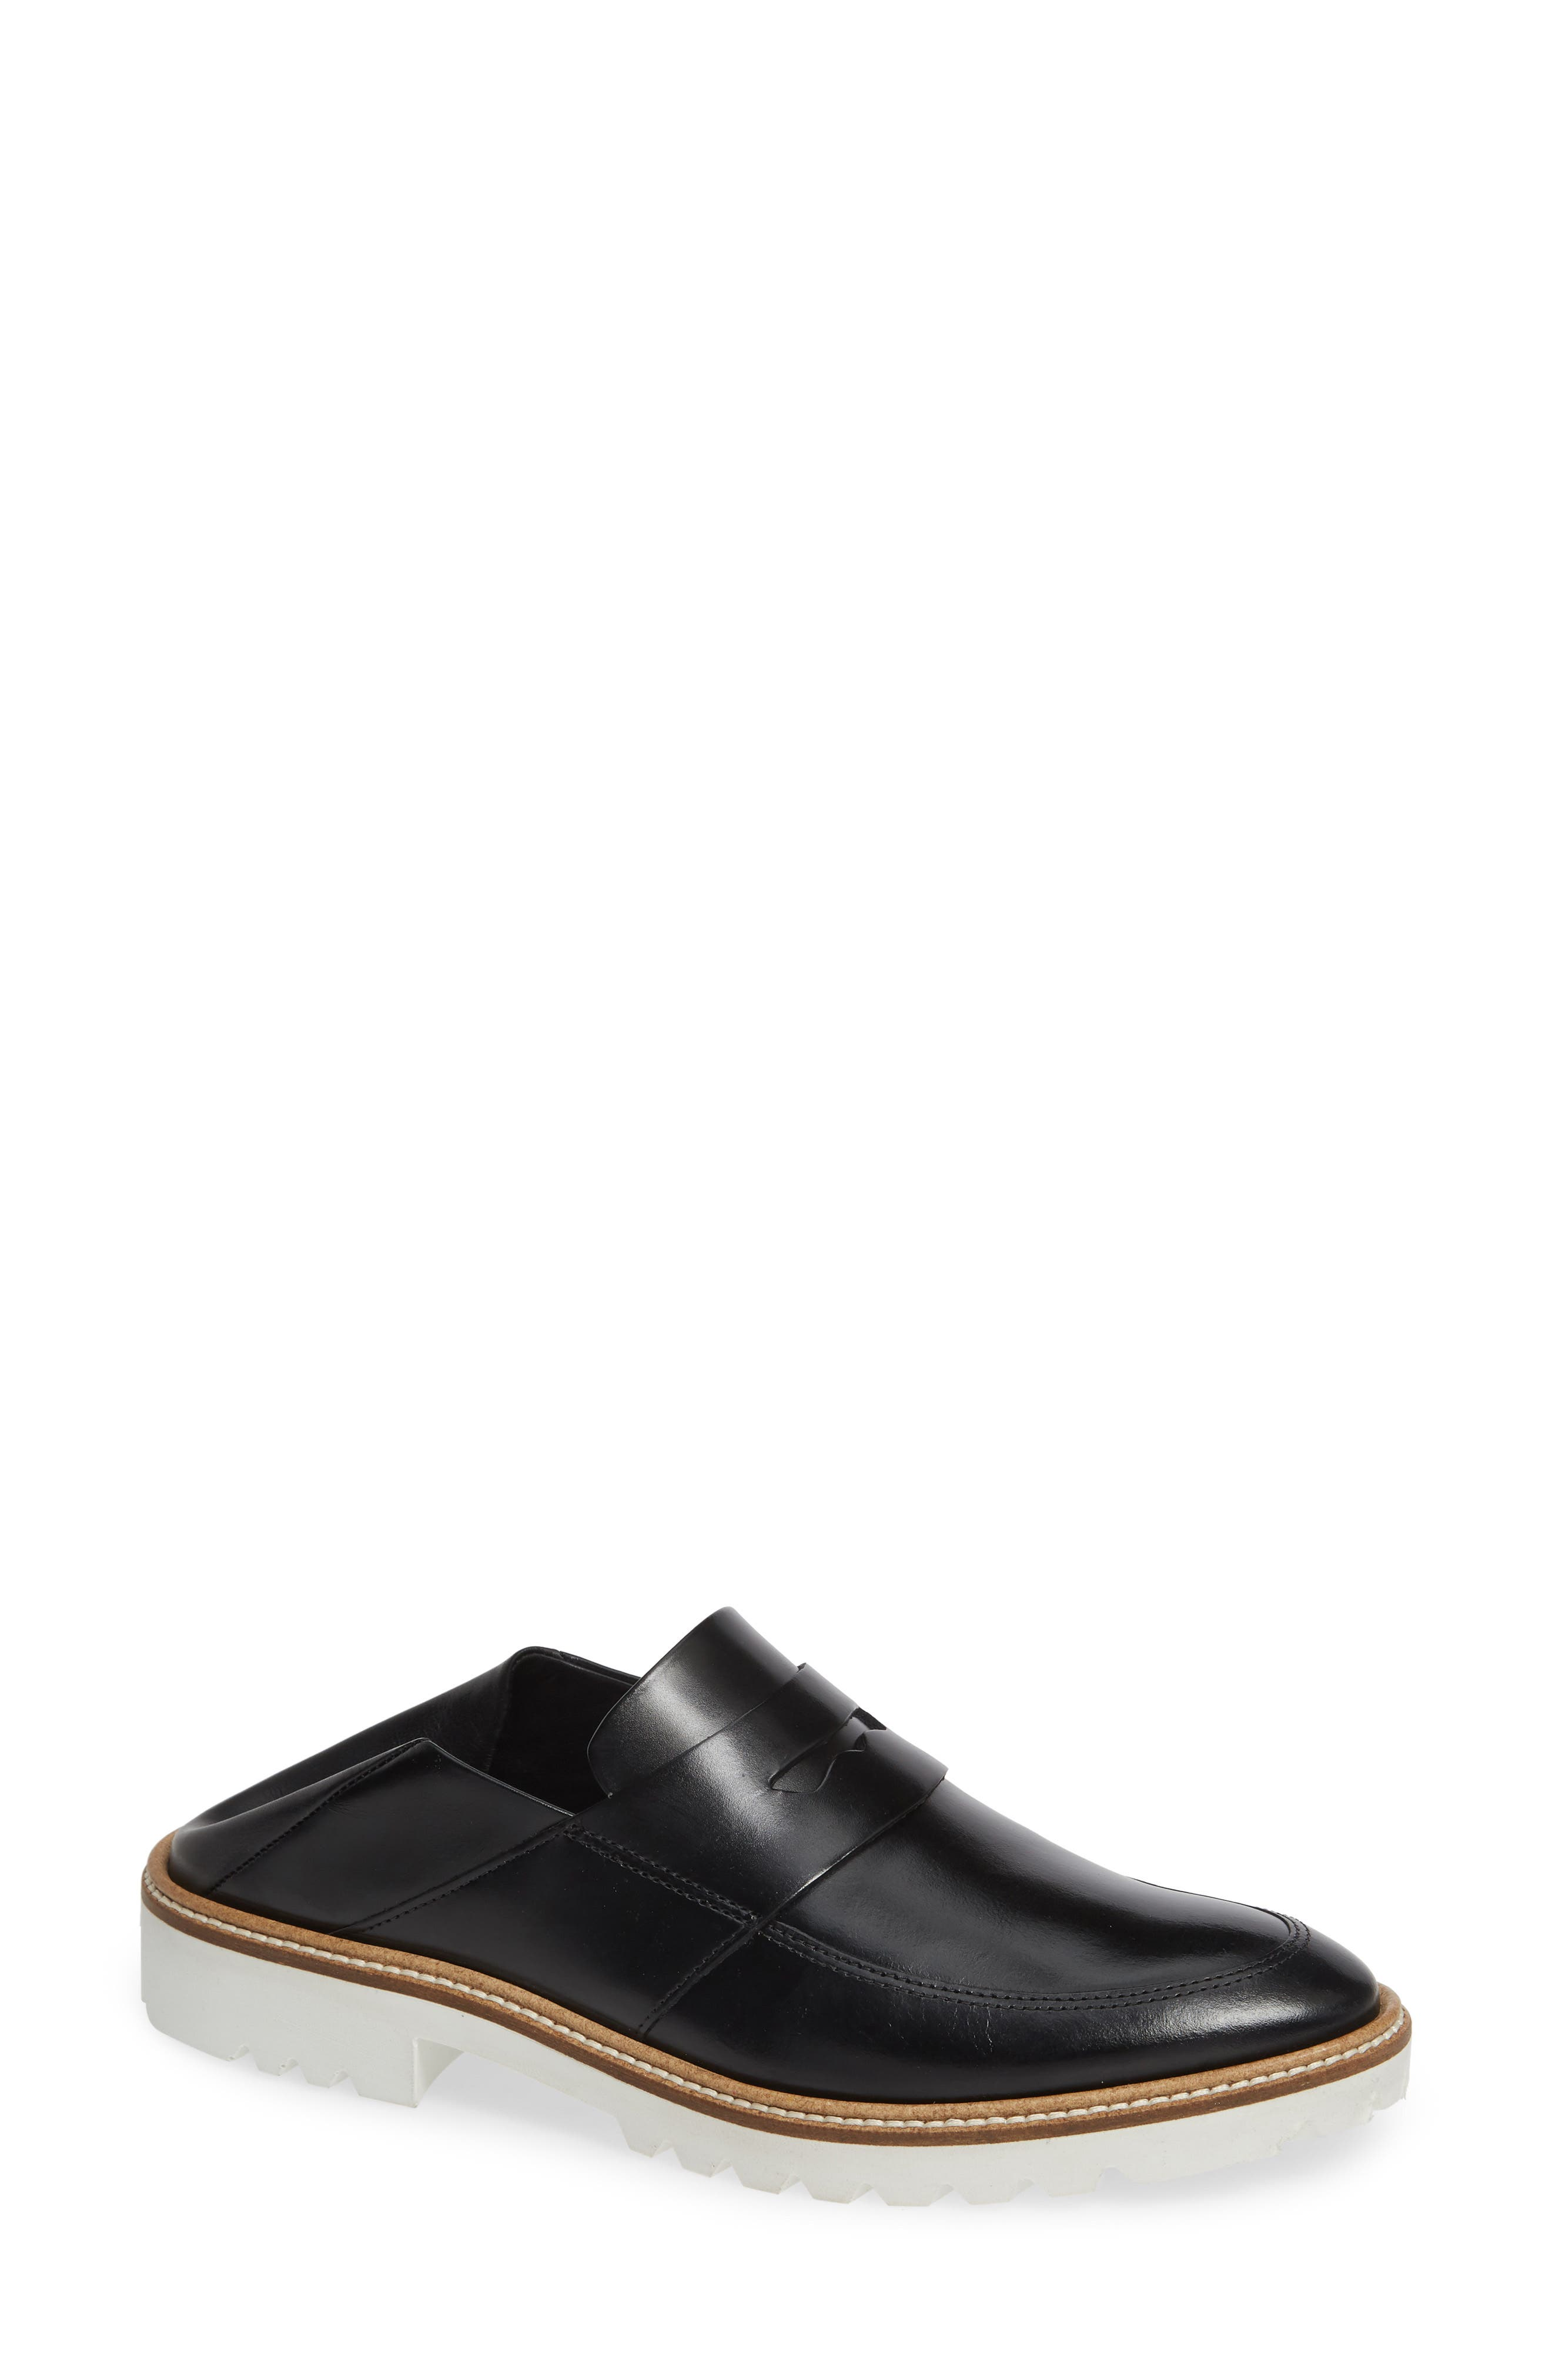 Incise Tailored Convertible Loafer, Main, color, BLACK LEATHER